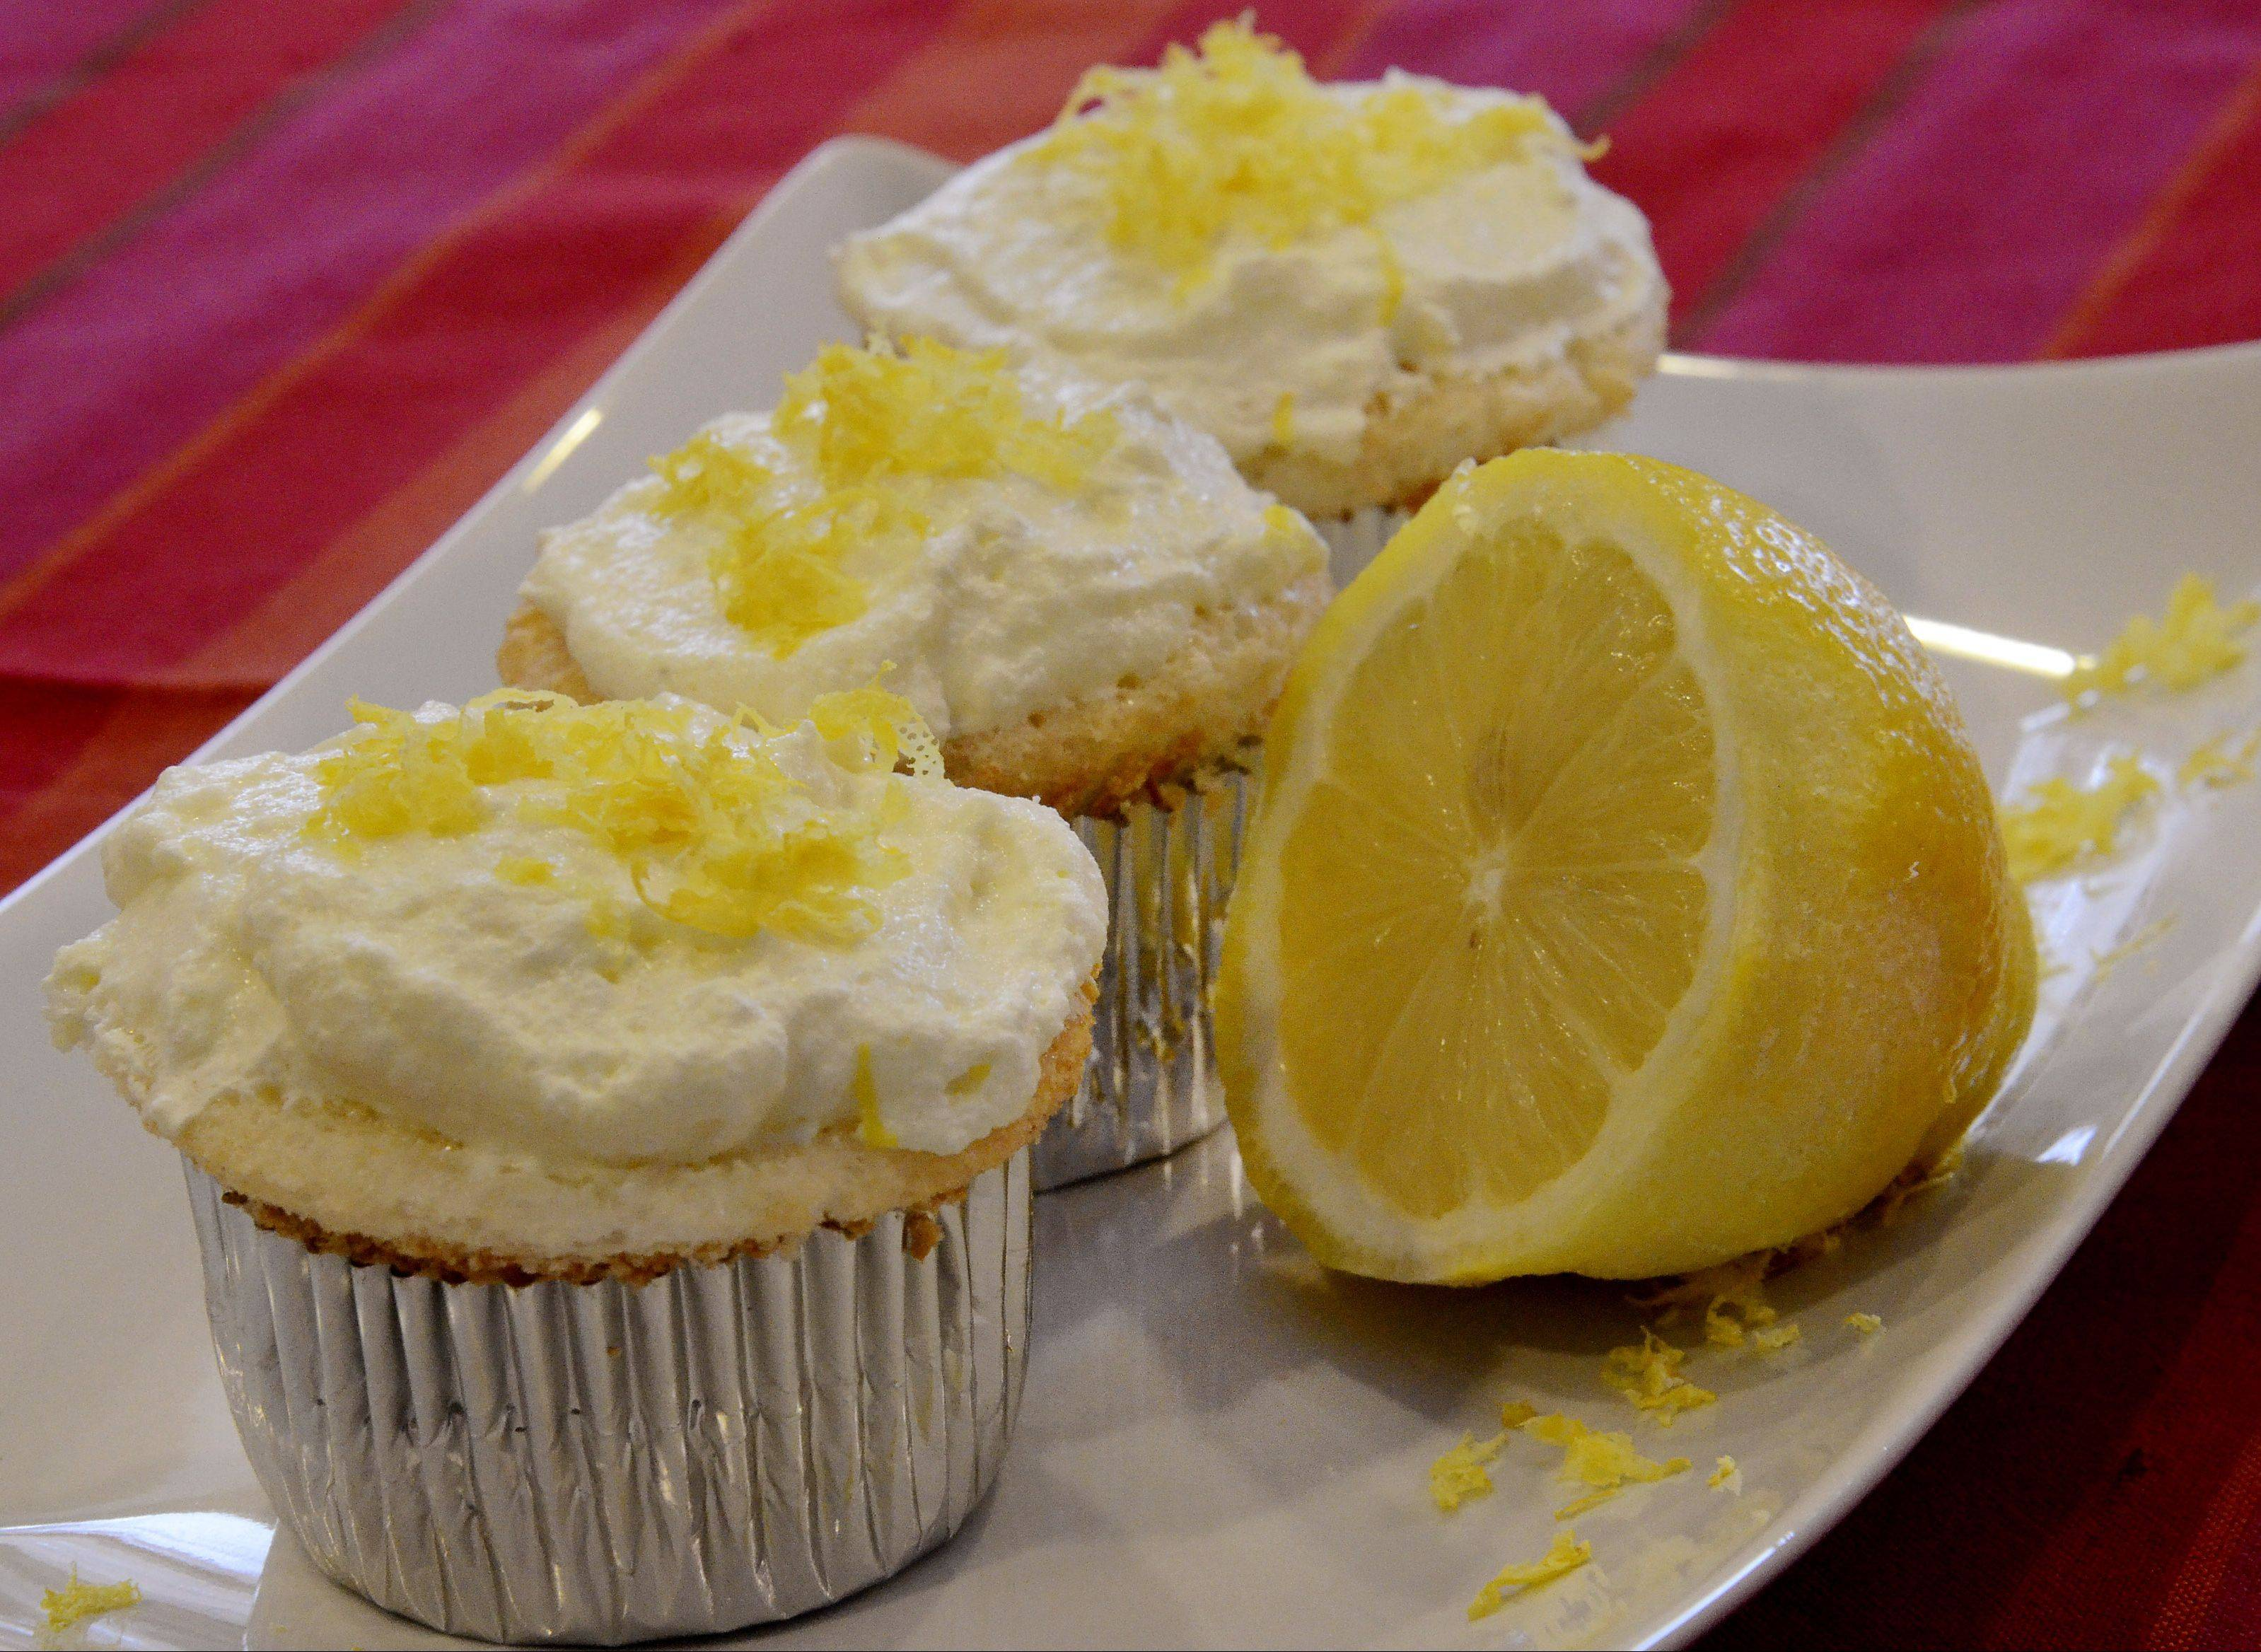 Eat right, live well: Lemony cupcakes bring a taste of sunshine